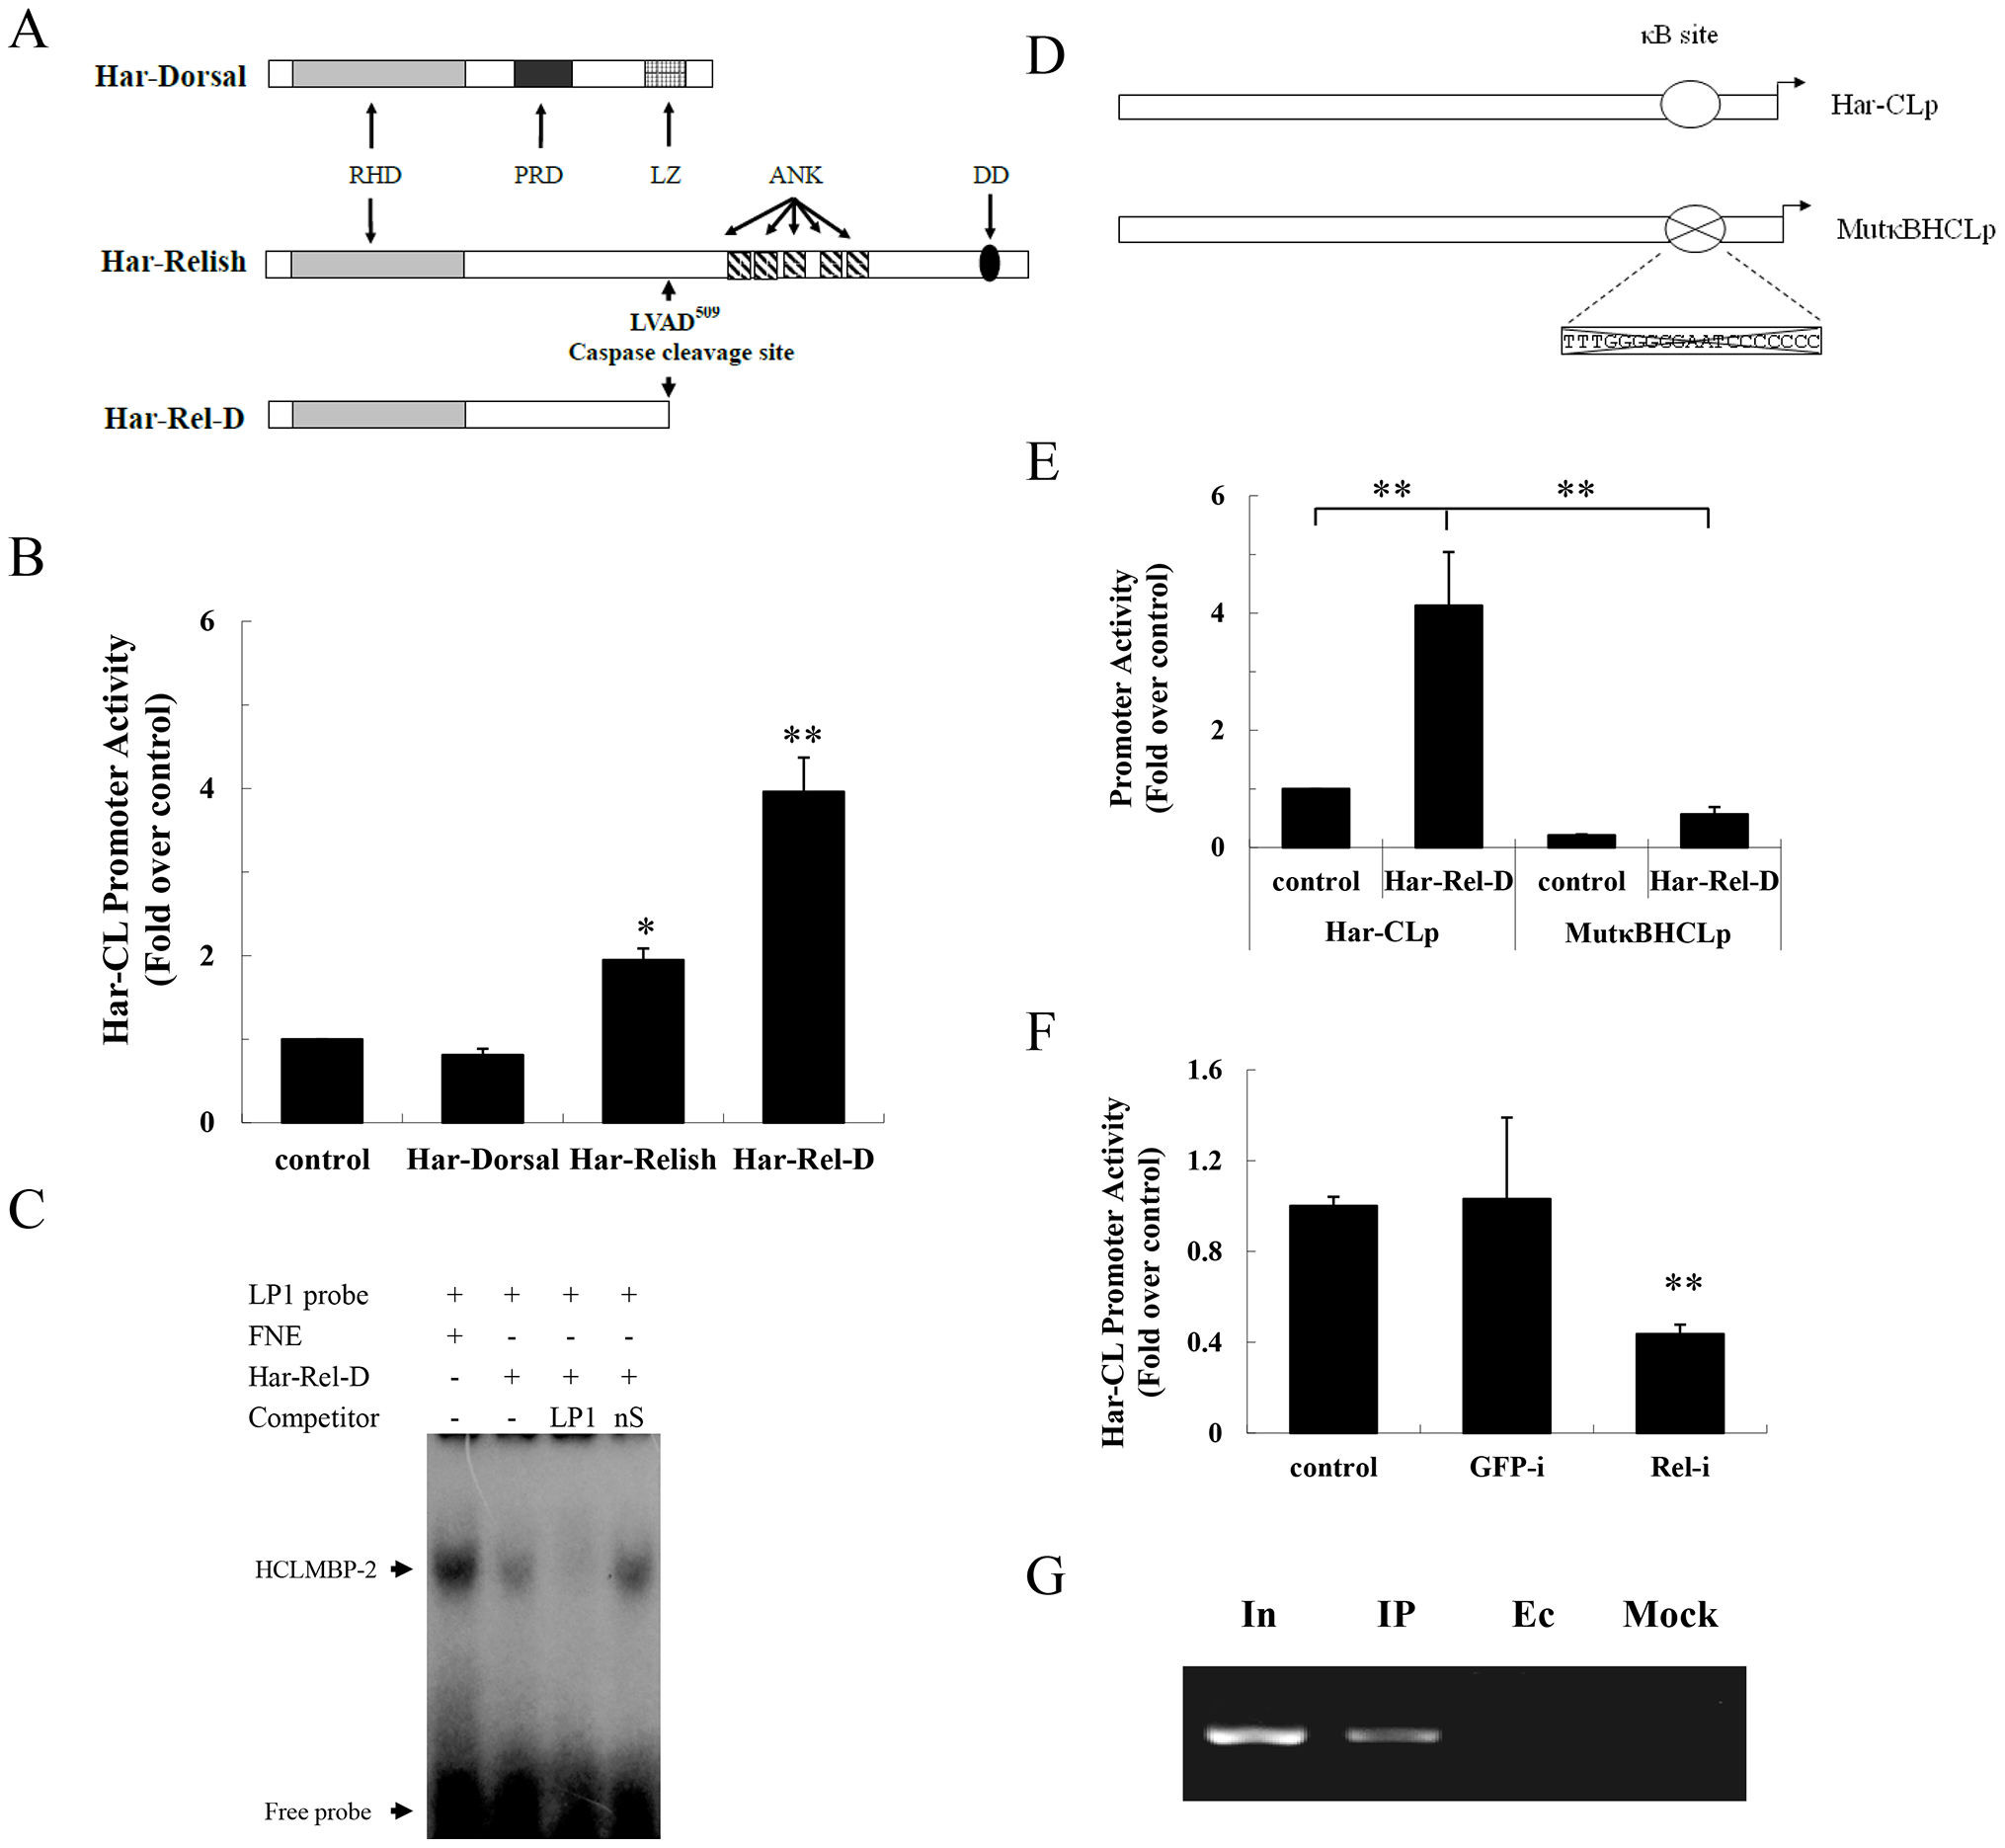 Har-Relish binding to the NF-κB-binding site and increasing Har-CL promoter activity.